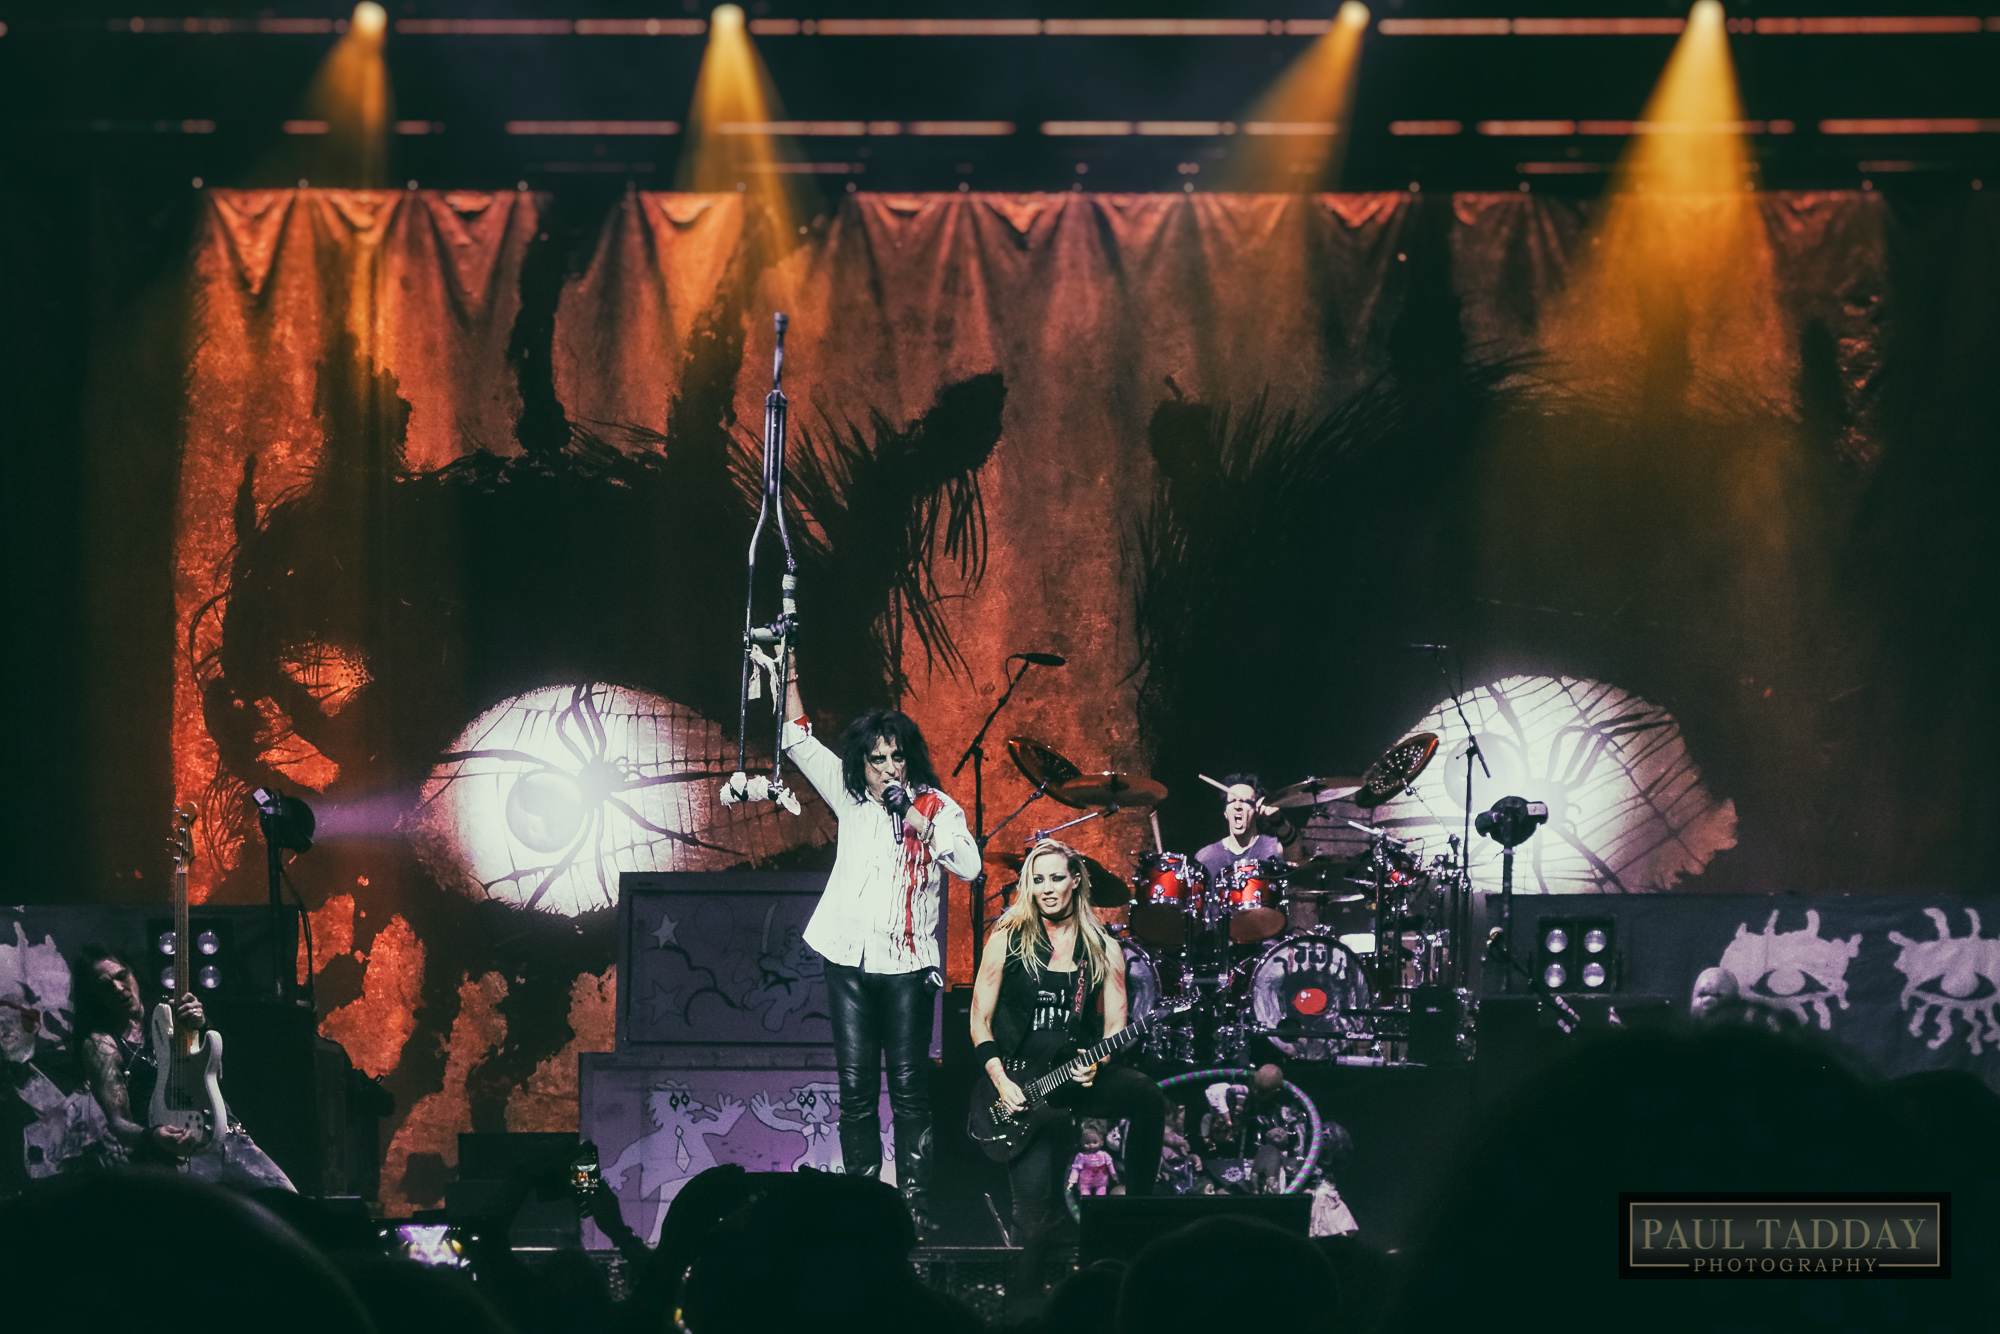 alice cooper - melbourne - paul tadday photography - 201017 - 50.jpg